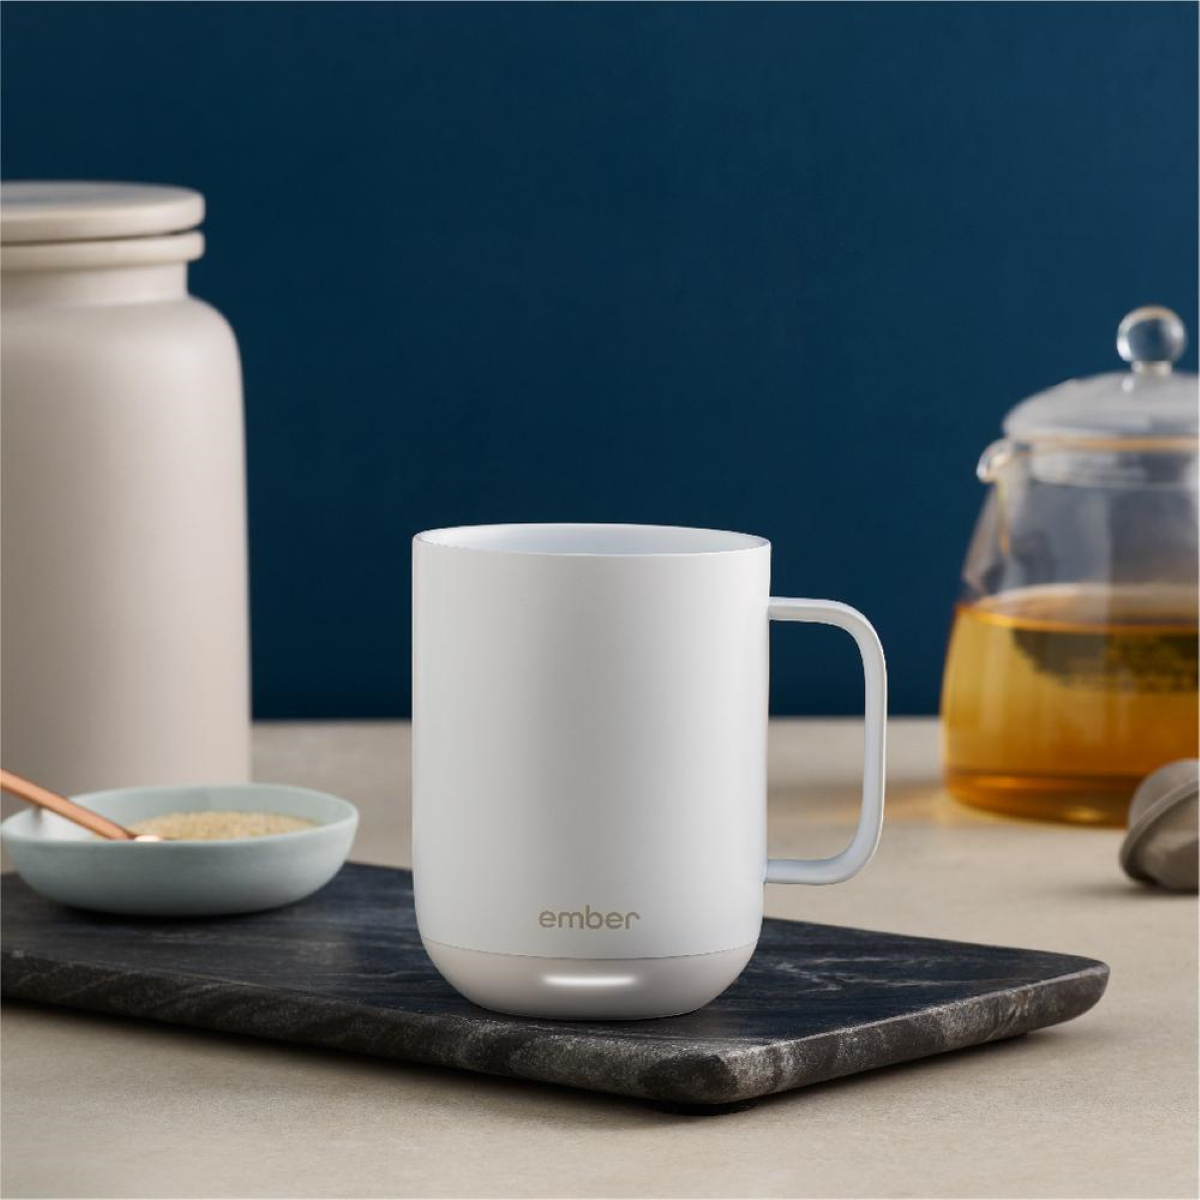 Ember Mug 2 battery heated coffee mug - 10 oz. model in White